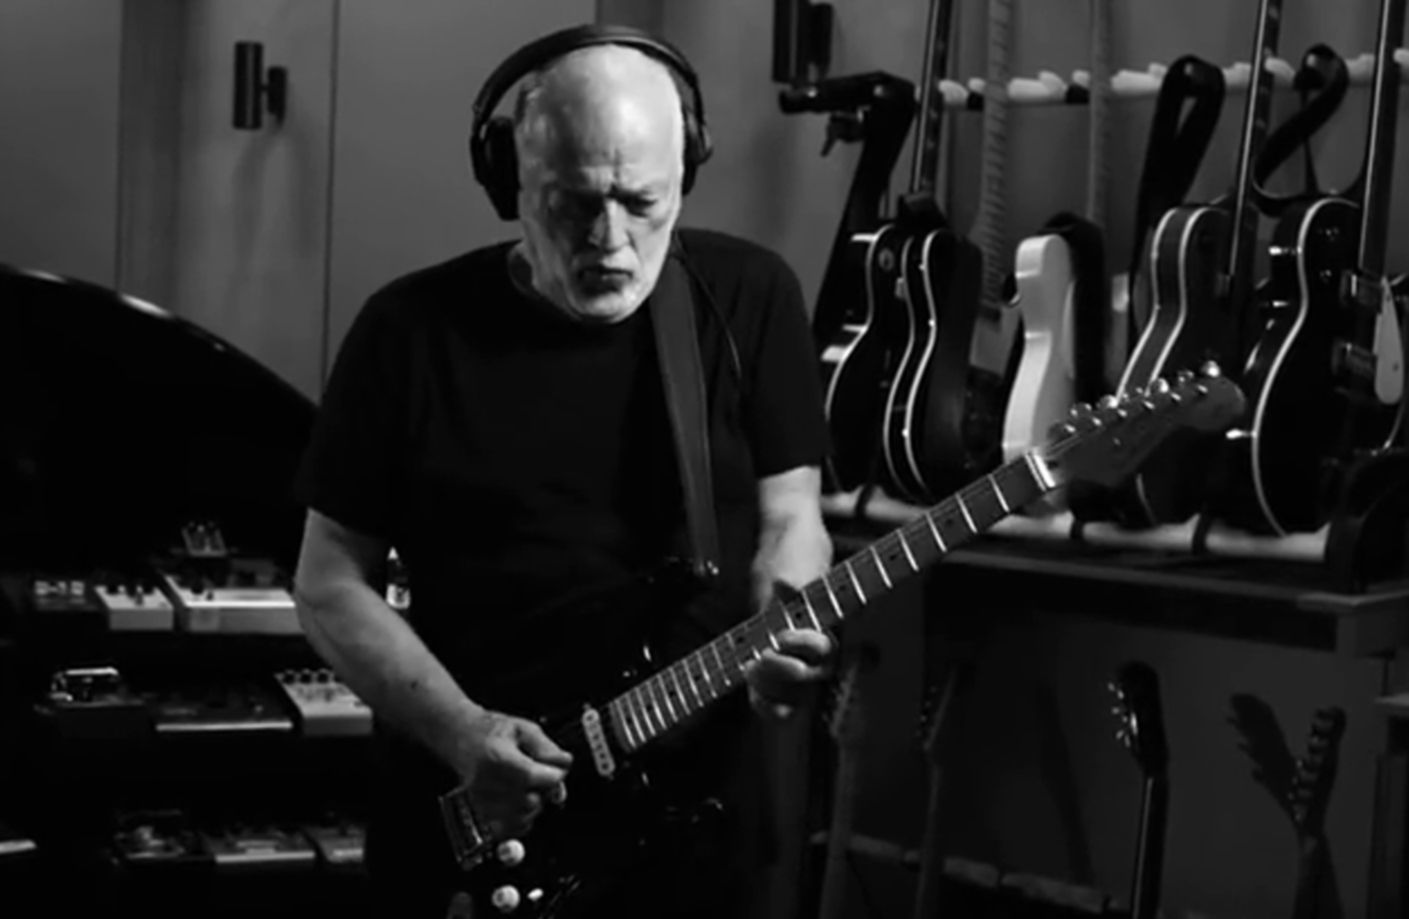 David Gilmour faces of stone video shot 2015